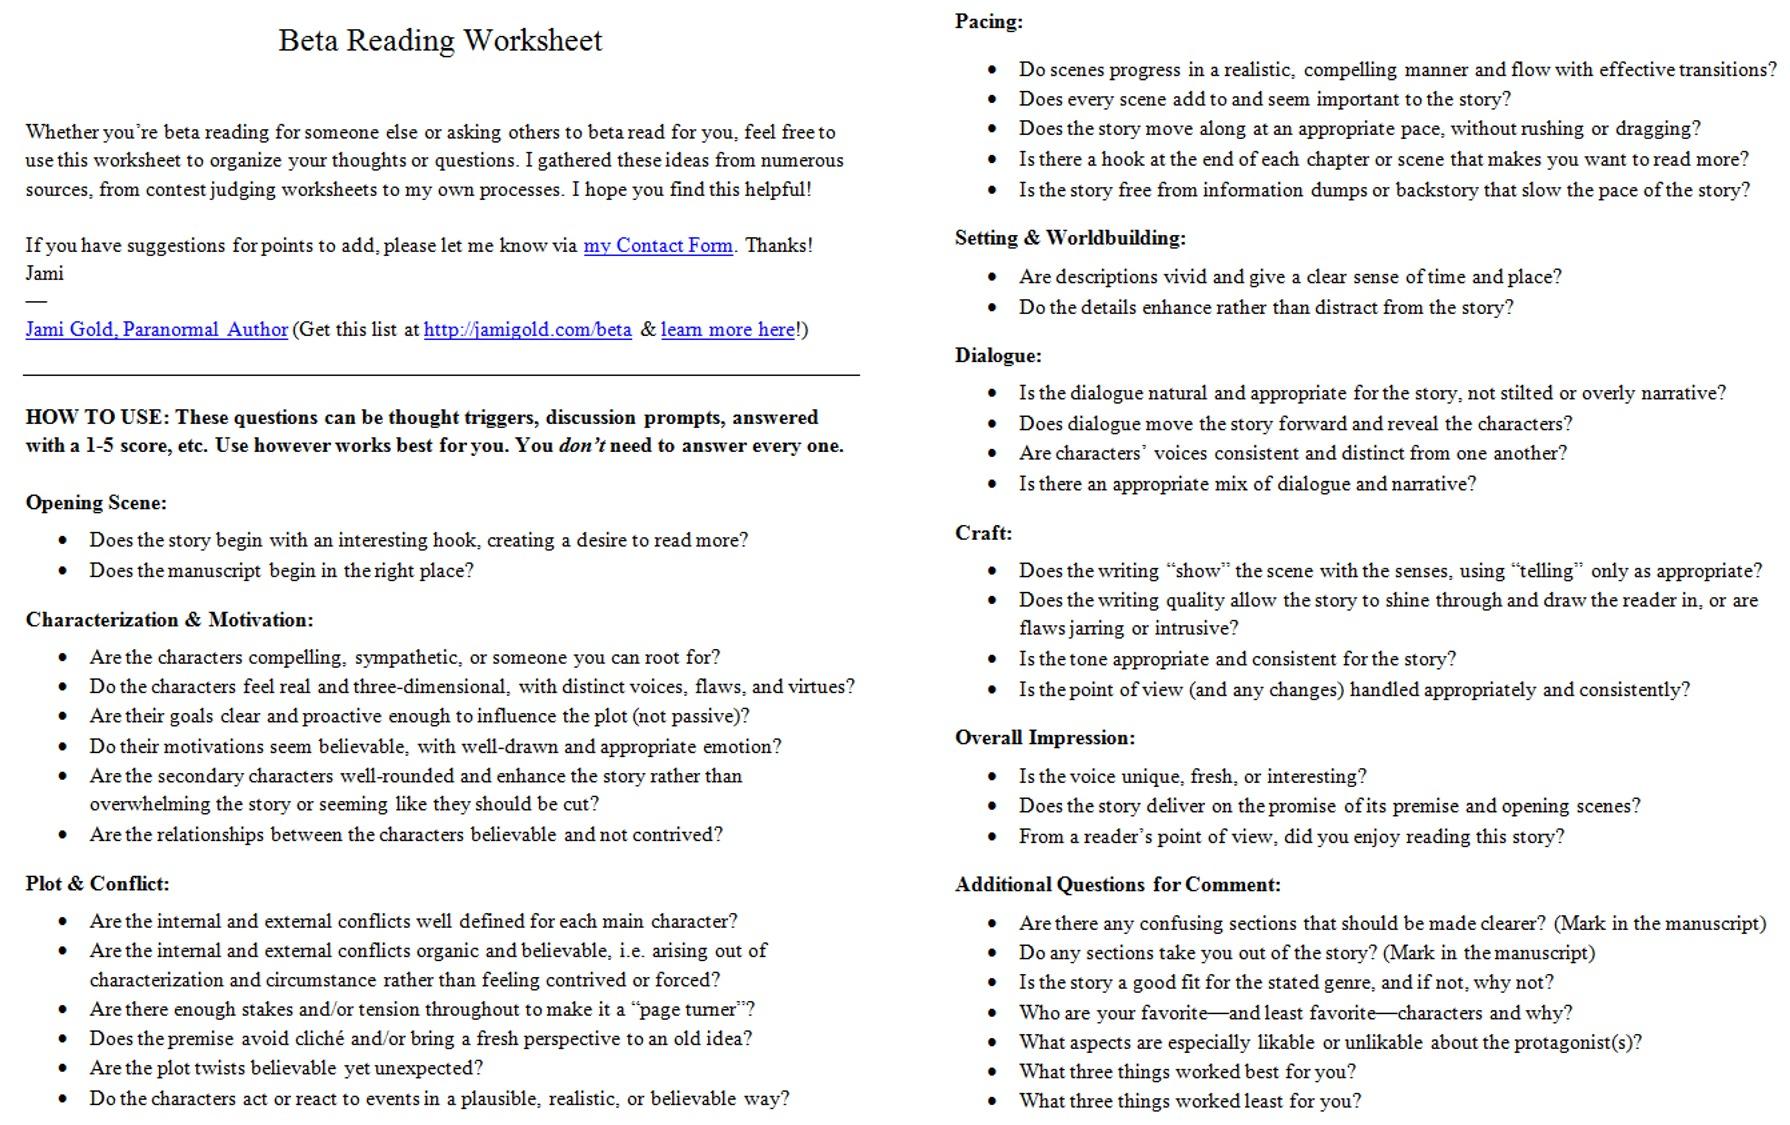 Weirdmailus  Mesmerizing Worksheets For Writers  Jami Gold Paranormal Author With Fascinating Screen Shot Of The Twopage Beta Reading Worksheet With Easy On The Eye Free Rd Grade Printable Worksheets Also Th Digraph Worksheets In Addition Reception Maths Worksheets Free And Preschool Printable Worksheets Numbers As Well As Calculations Using Significant Figures Worksheet Additionally Phet Skate Park Worksheet Answers From Jamigoldcom With Weirdmailus  Fascinating Worksheets For Writers  Jami Gold Paranormal Author With Easy On The Eye Screen Shot Of The Twopage Beta Reading Worksheet And Mesmerizing Free Rd Grade Printable Worksheets Also Th Digraph Worksheets In Addition Reception Maths Worksheets Free From Jamigoldcom